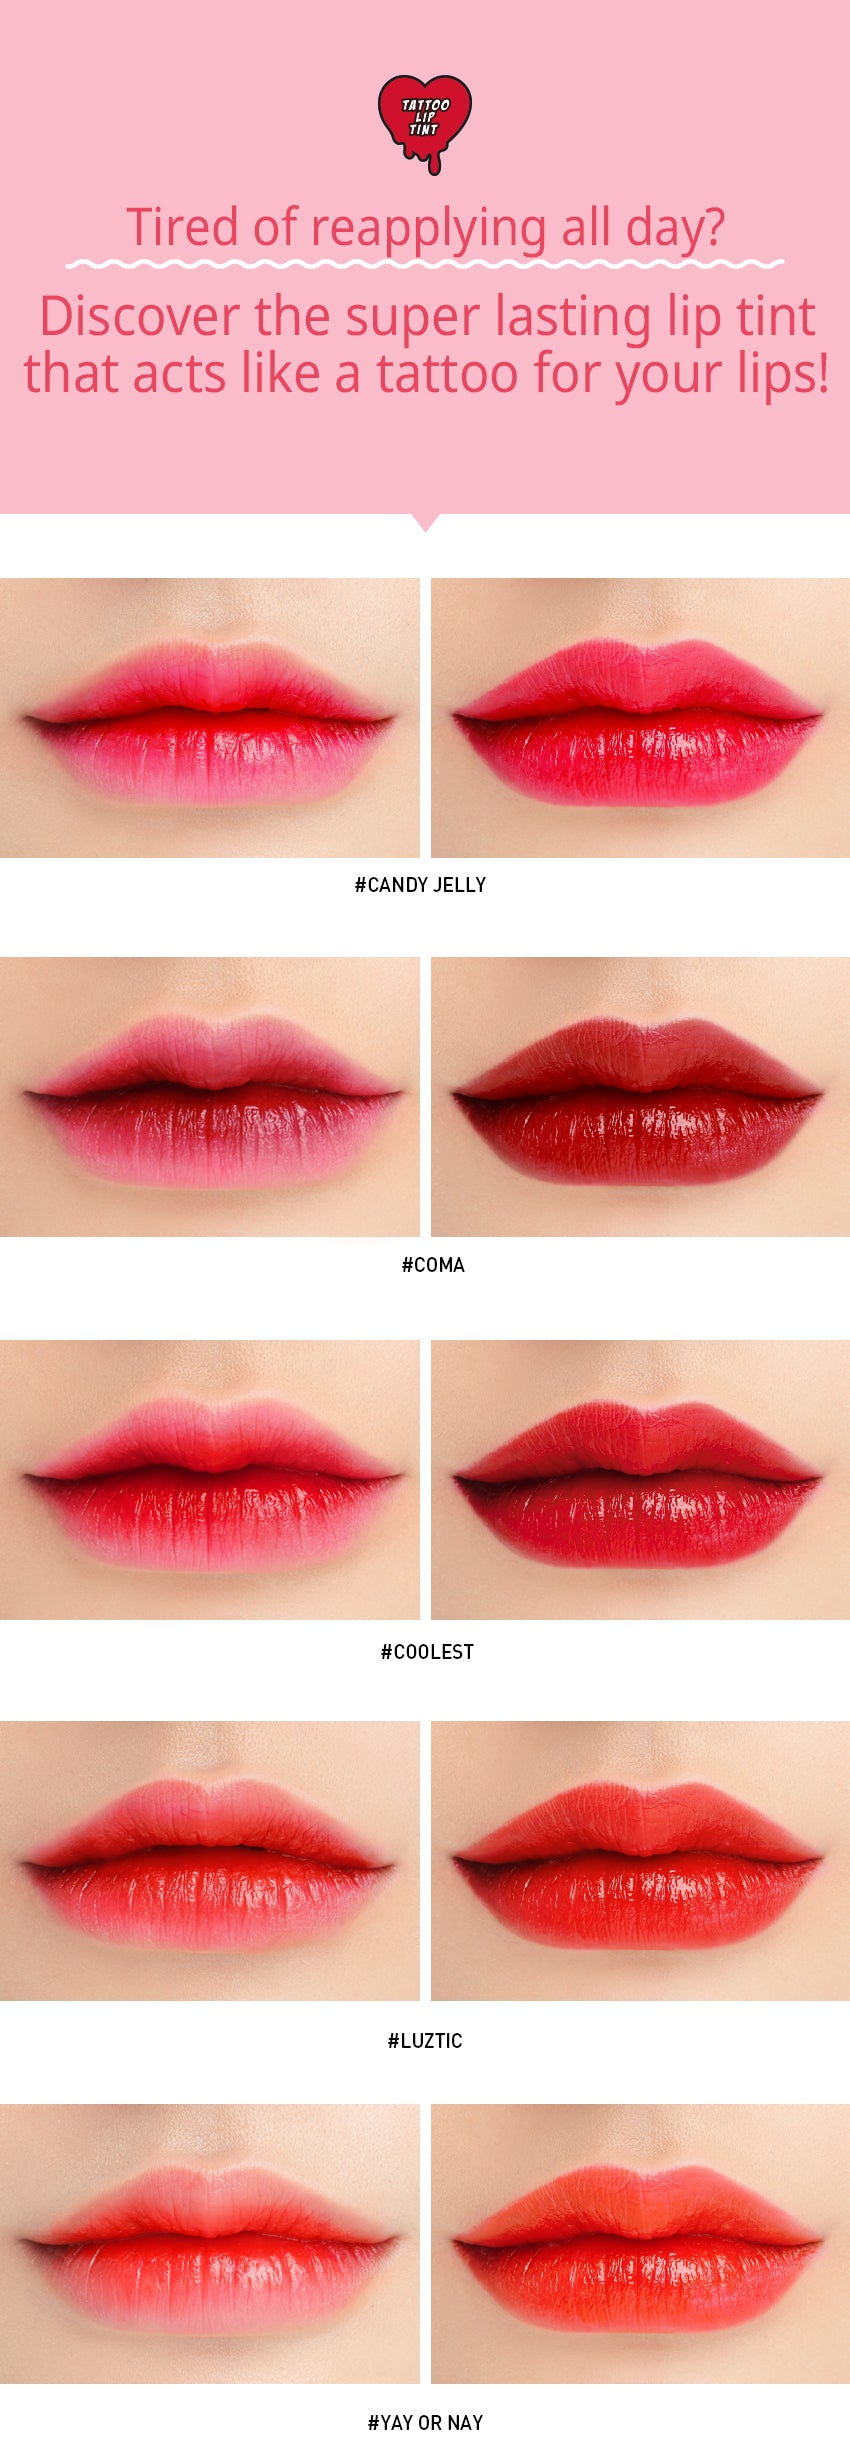 3ce_tattoo_lip_tint_coolest-13.jpg